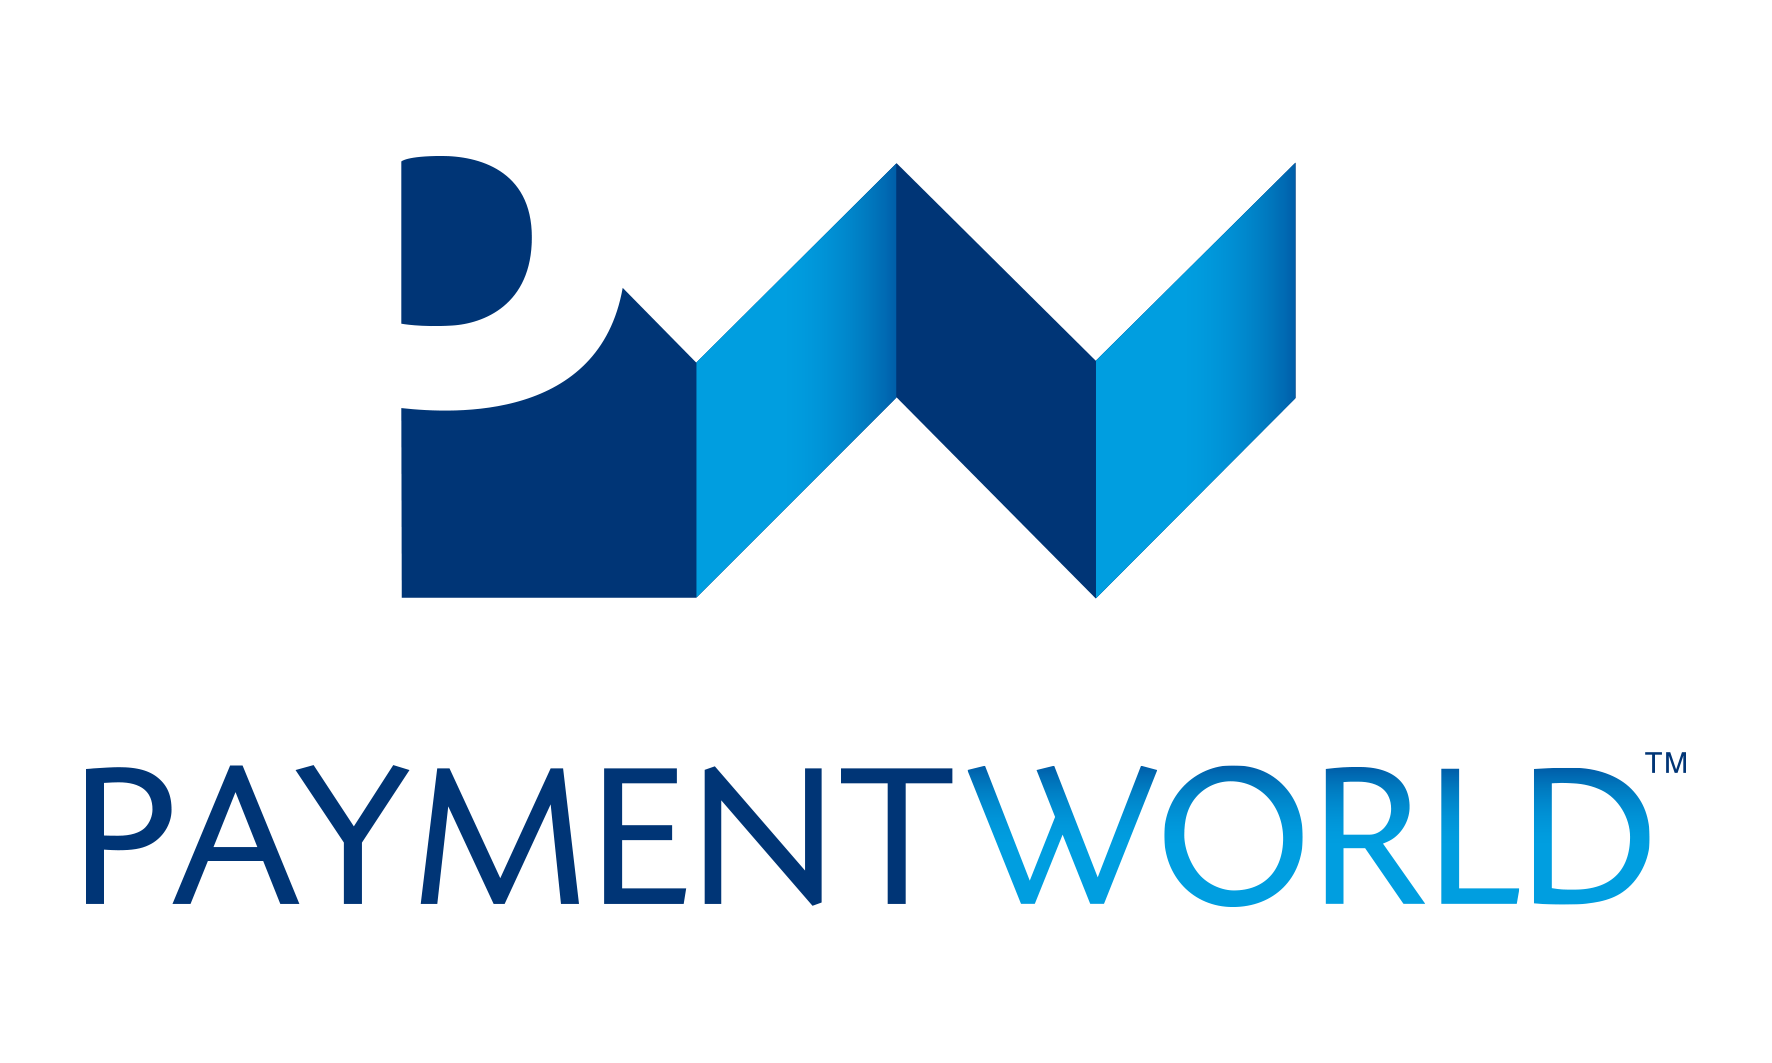 Token Enables Bank Direct Payments for Paymentworld